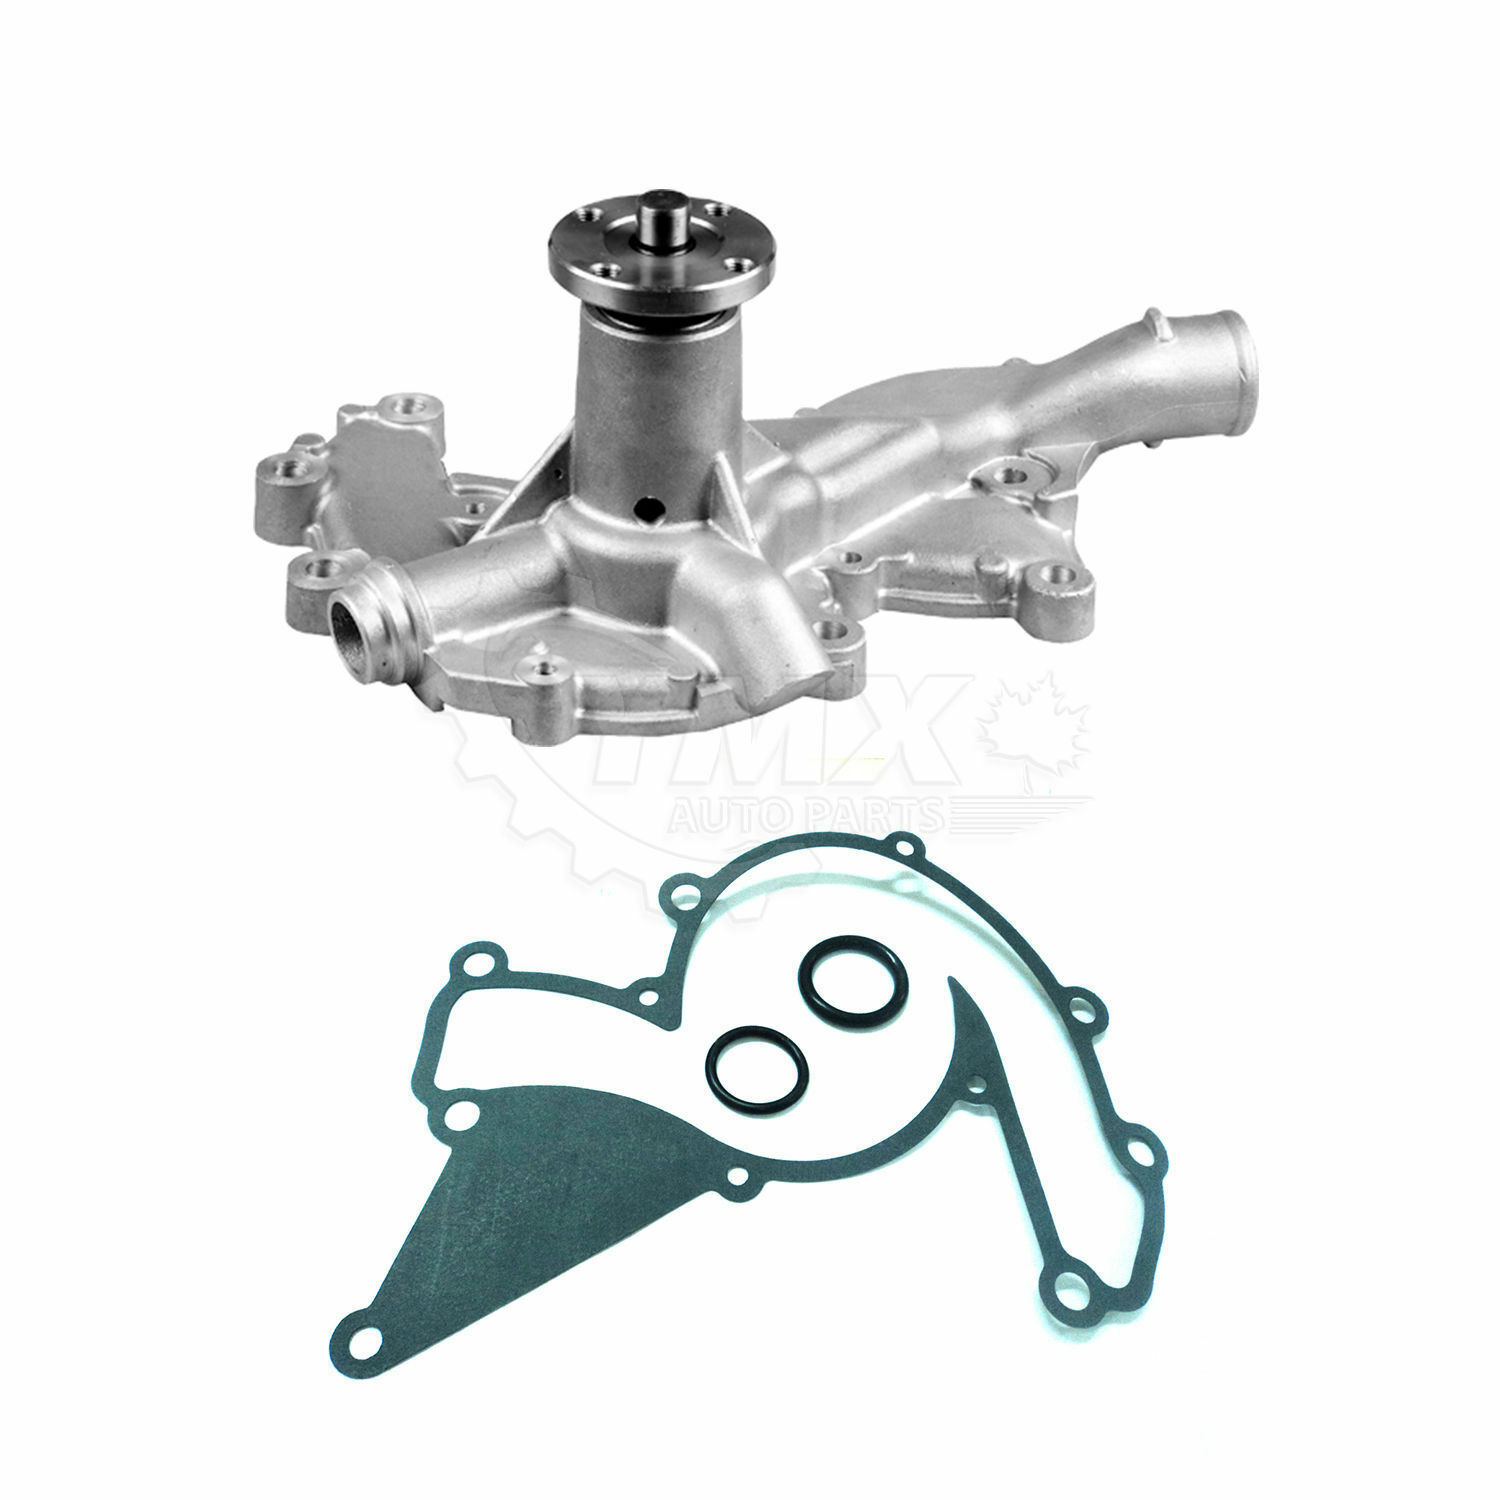 7-1340 GMC Water Pump, Remanufactured By Arrow 3634552, 3634580